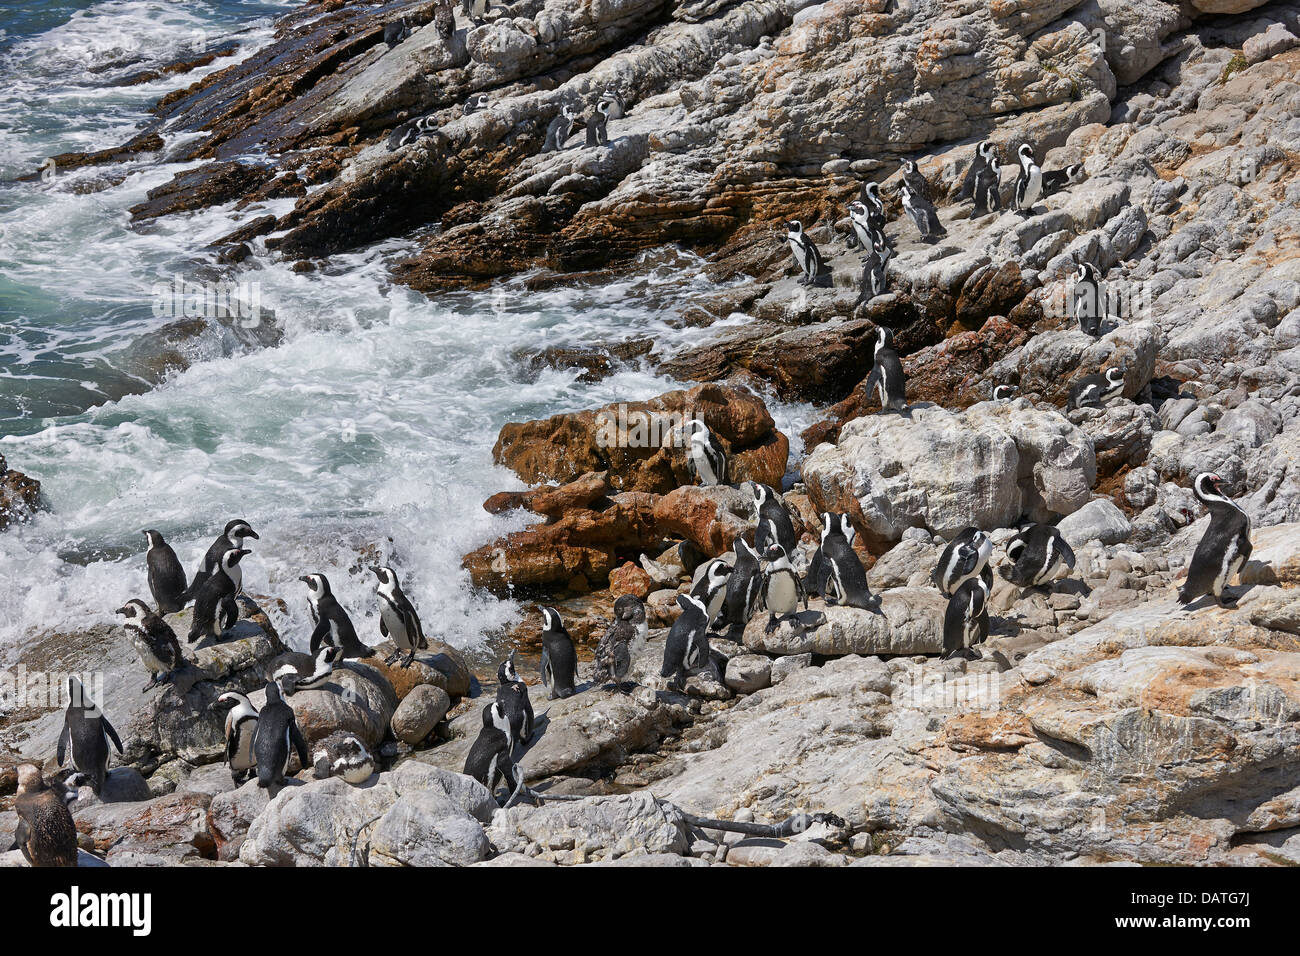 colony of African Penguin, Spheniscus demersus, on rocks of Betty's Bay, Cape Town, Western Cape, South Africa - Stock Image